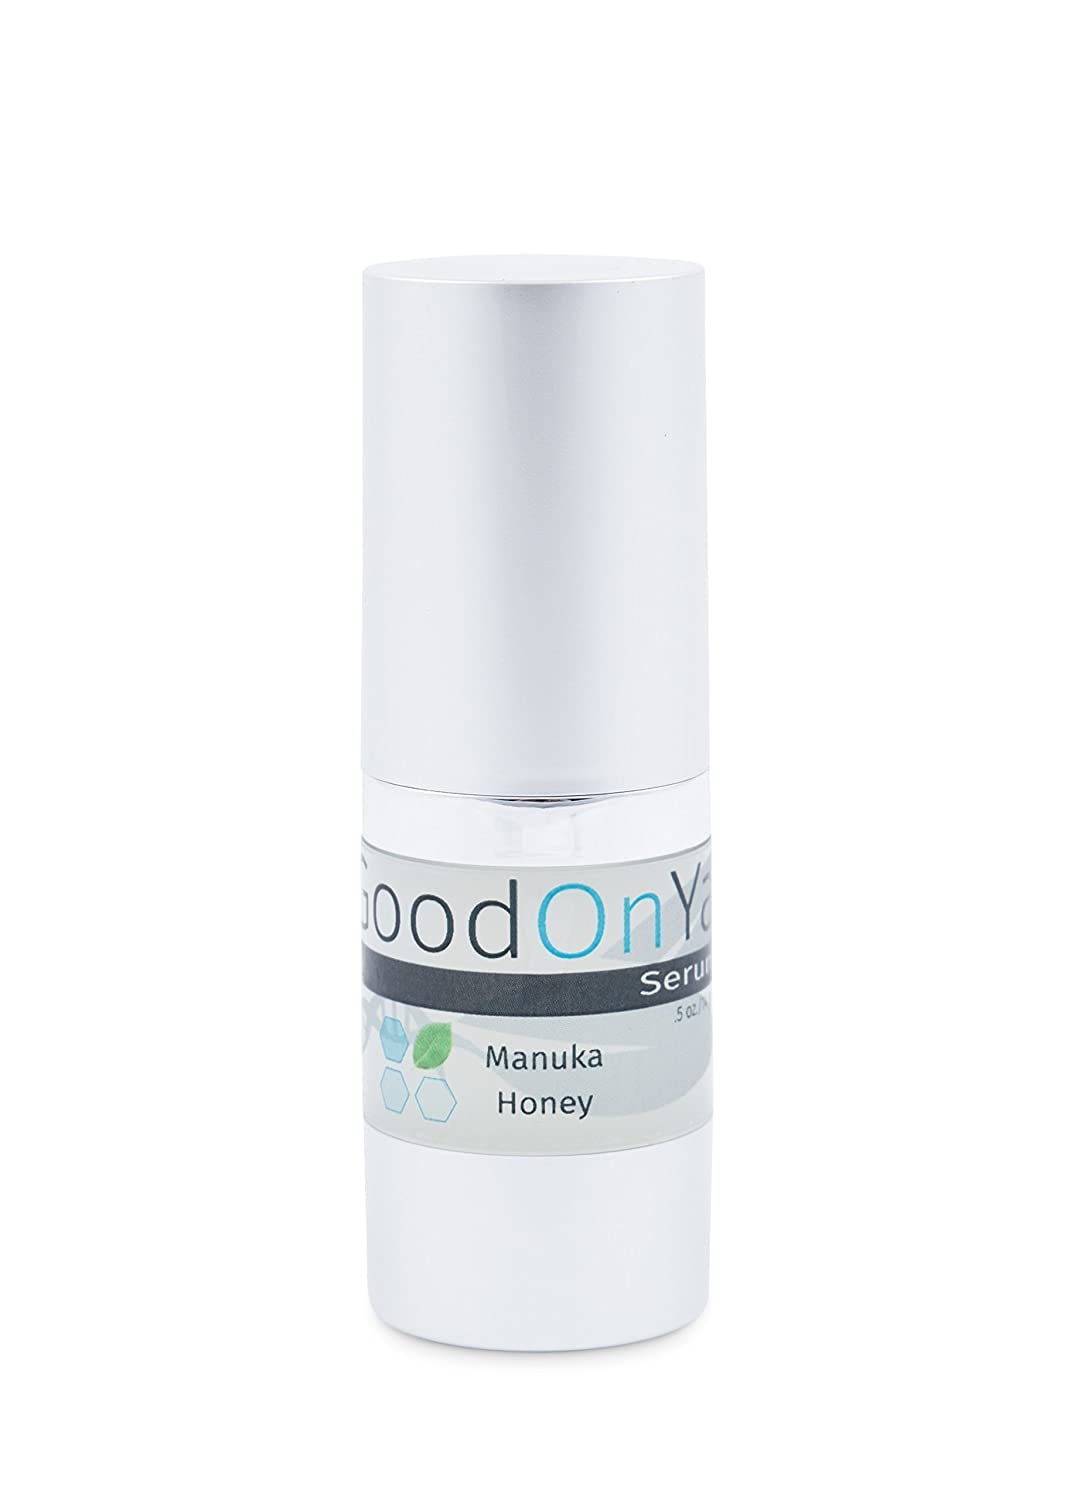 Antioxidant Serum, Anti Aging Face Serum, Instant Visible Results by GoodOnYa. Nano Aloe Vera, Vitamins A, C & E and Manuka Honey. Natural and Organic (.5 oz) Goy-711